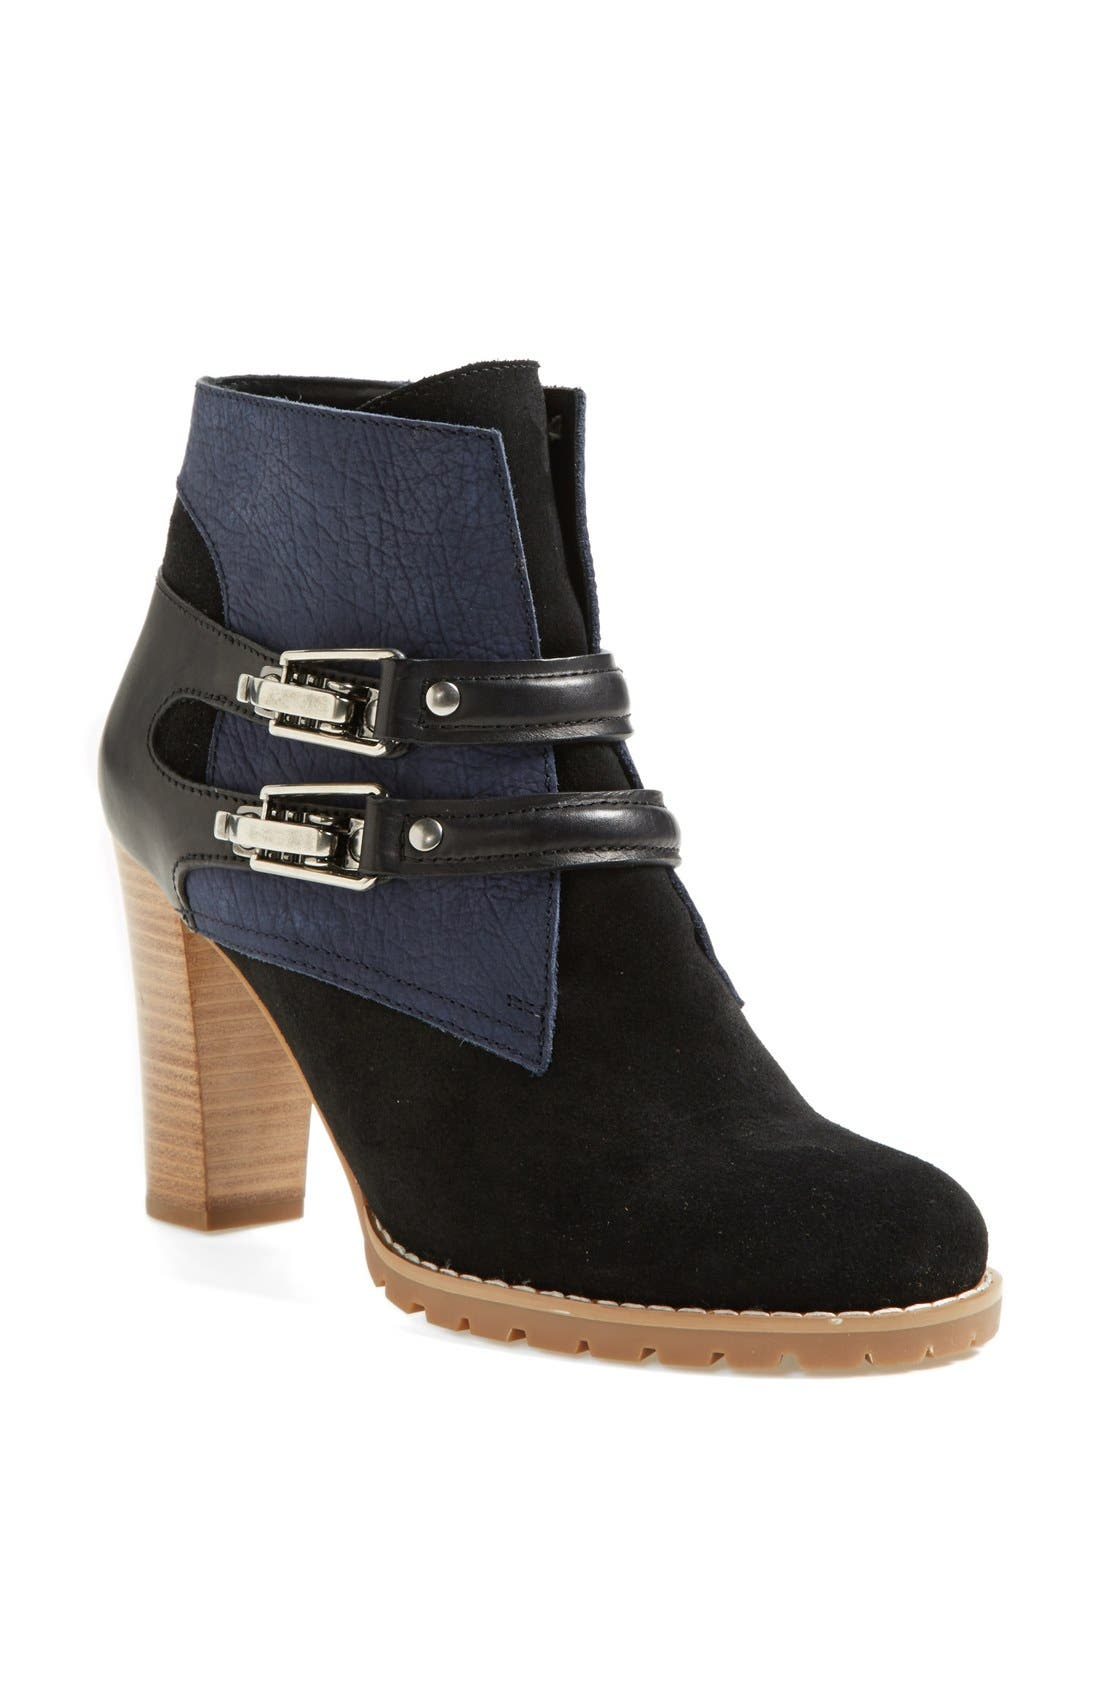 Alternate Image 1 Selected - See by Chloé 'Katia' Suede & Leather Bootie